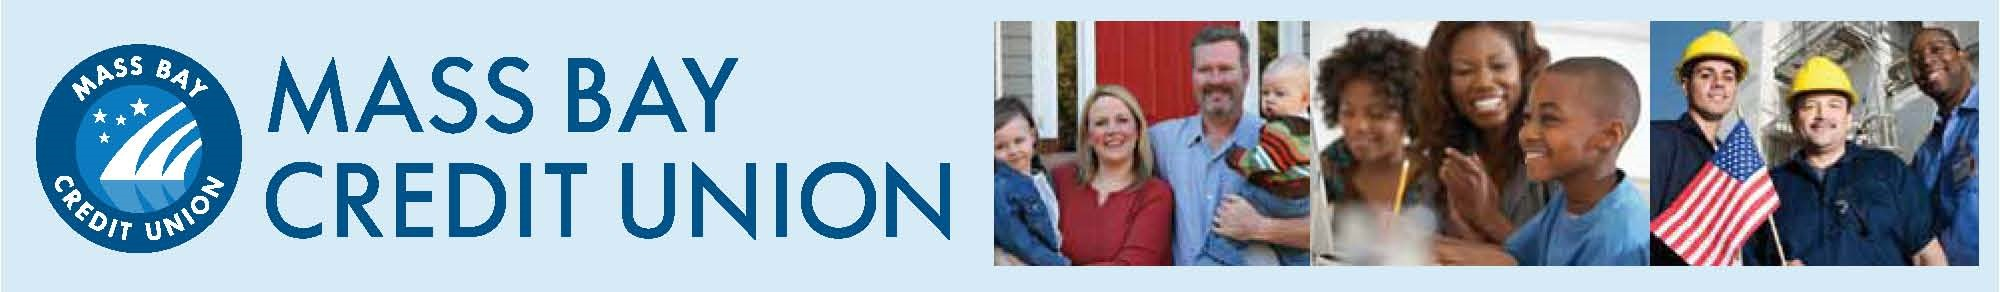 Mass Bay Credit Union 2021 Election & Annual Meeting